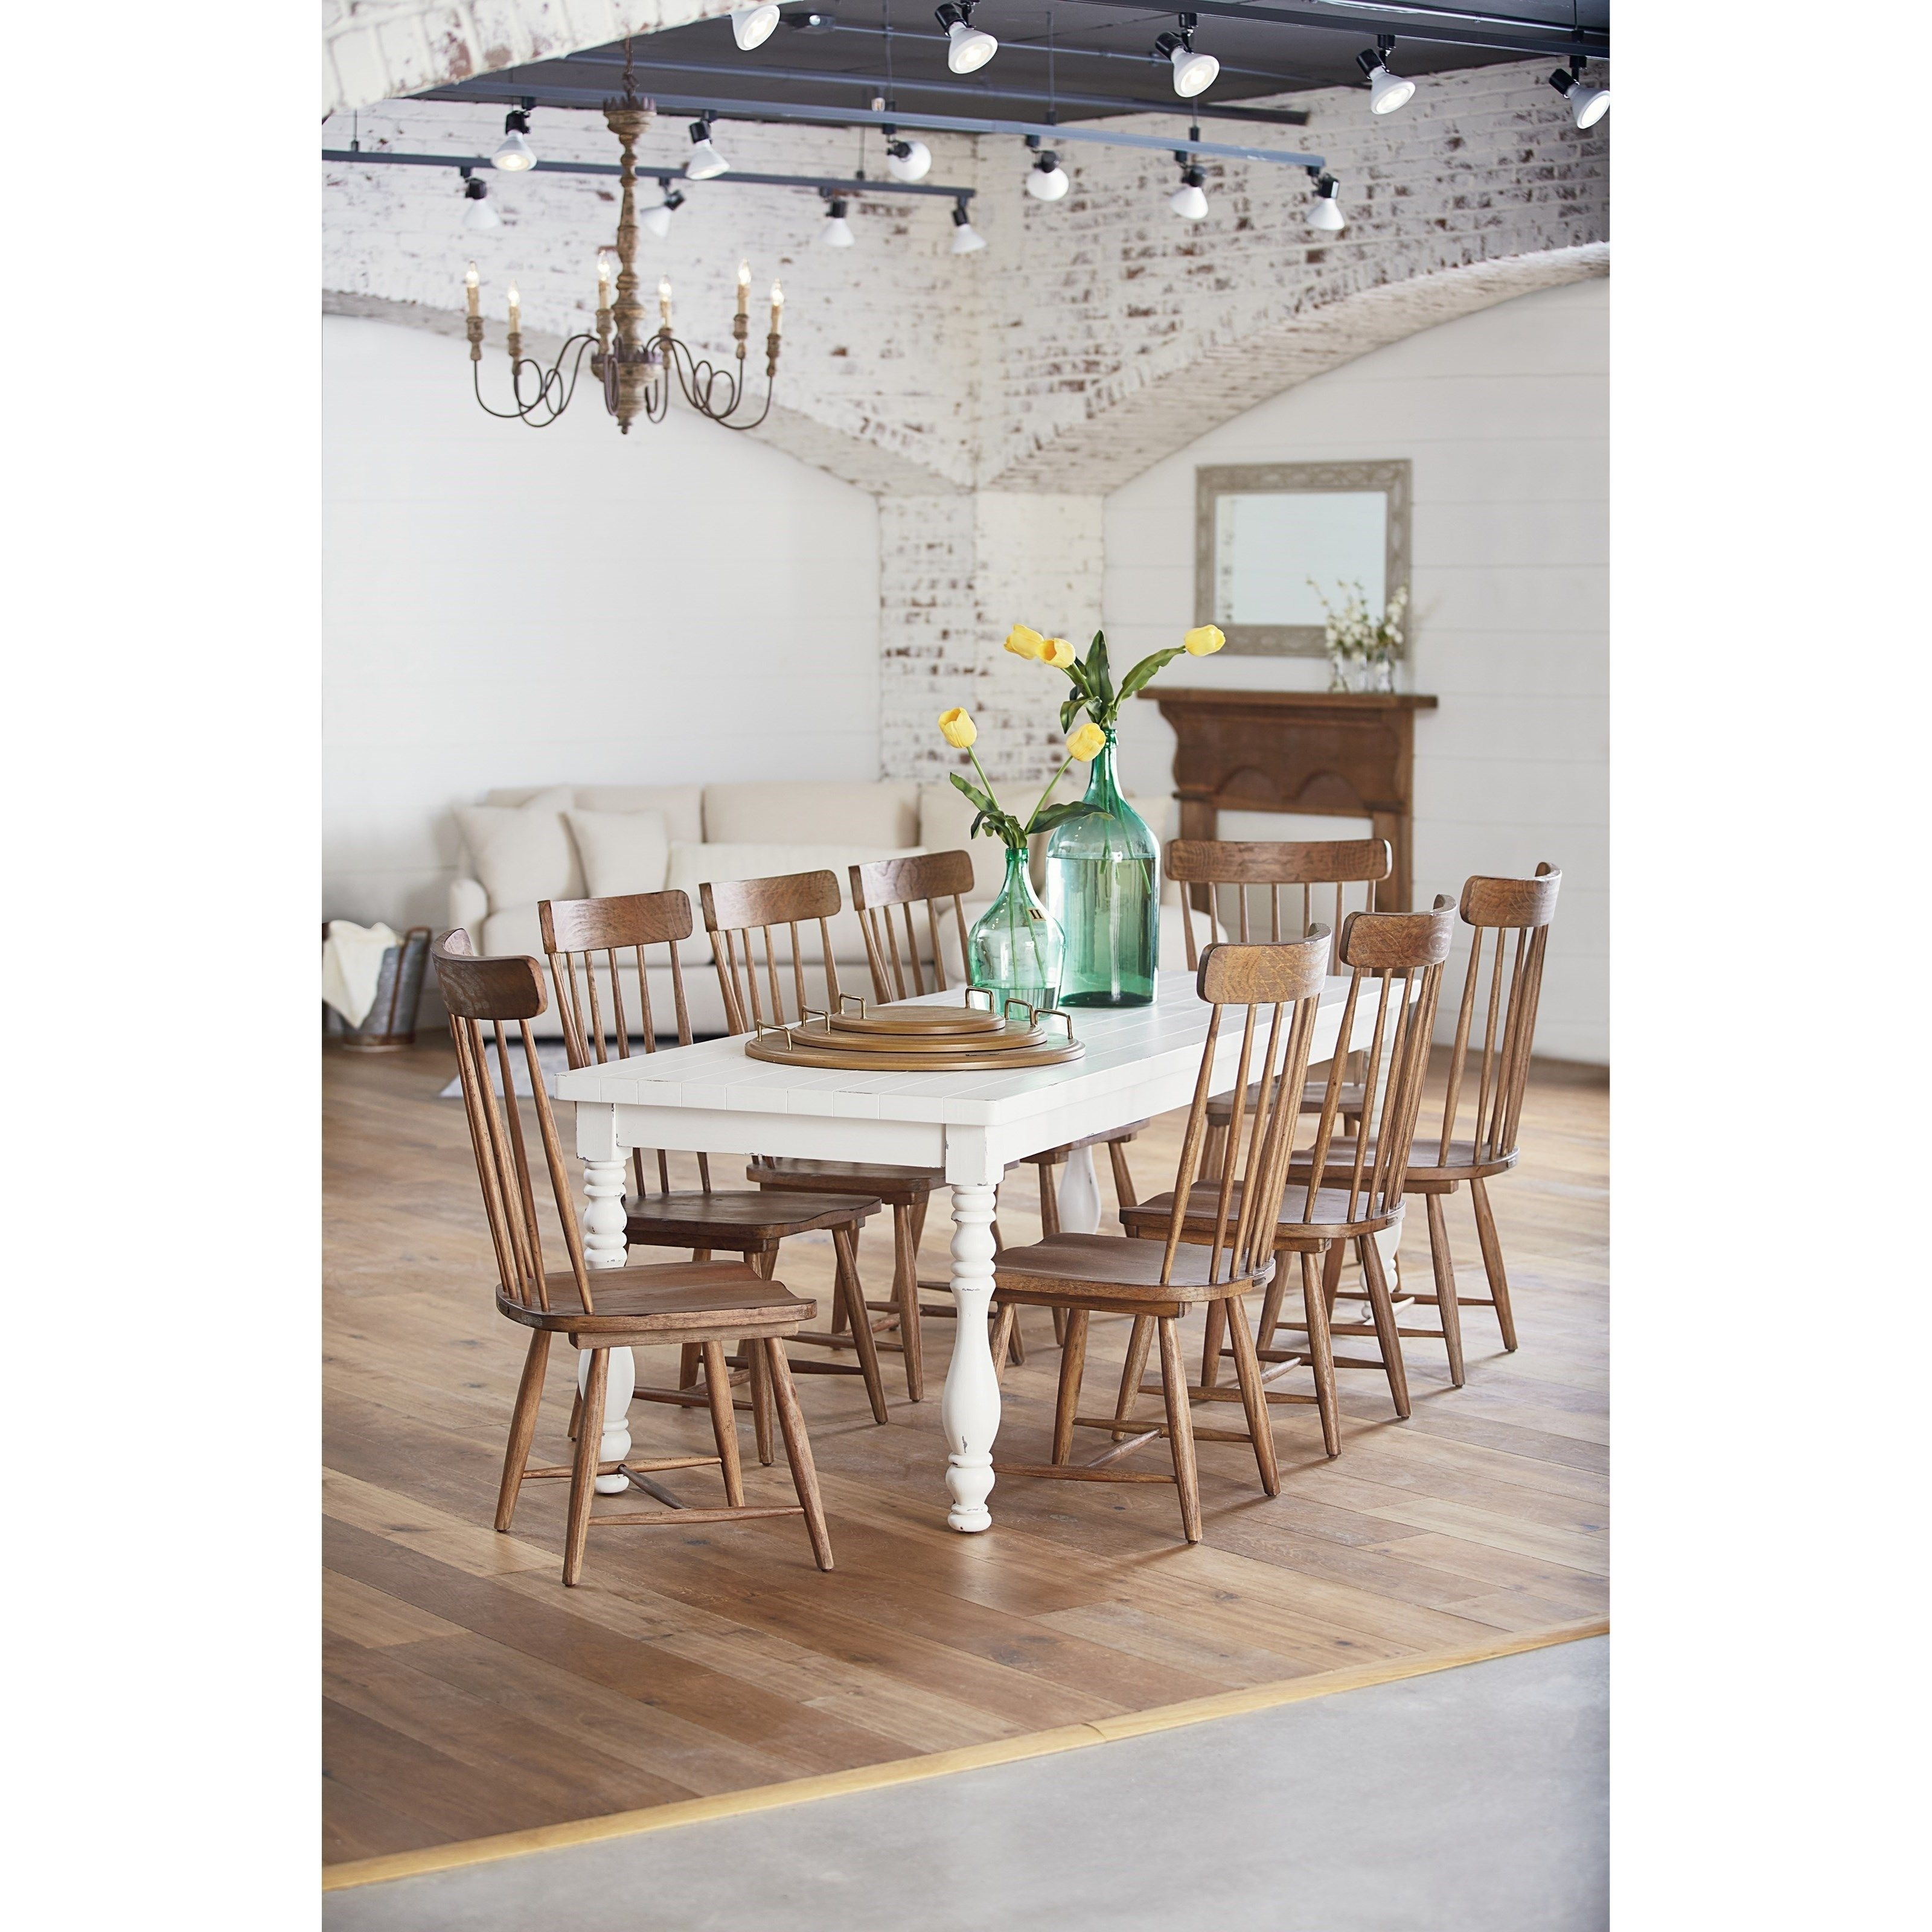 9 Piece Dining Setmagnolia Home | Decor | Pinterest | Dining With Most Current Wyatt 6 Piece Dining Sets With Celler Teal Chairs (Image 4 of 20)